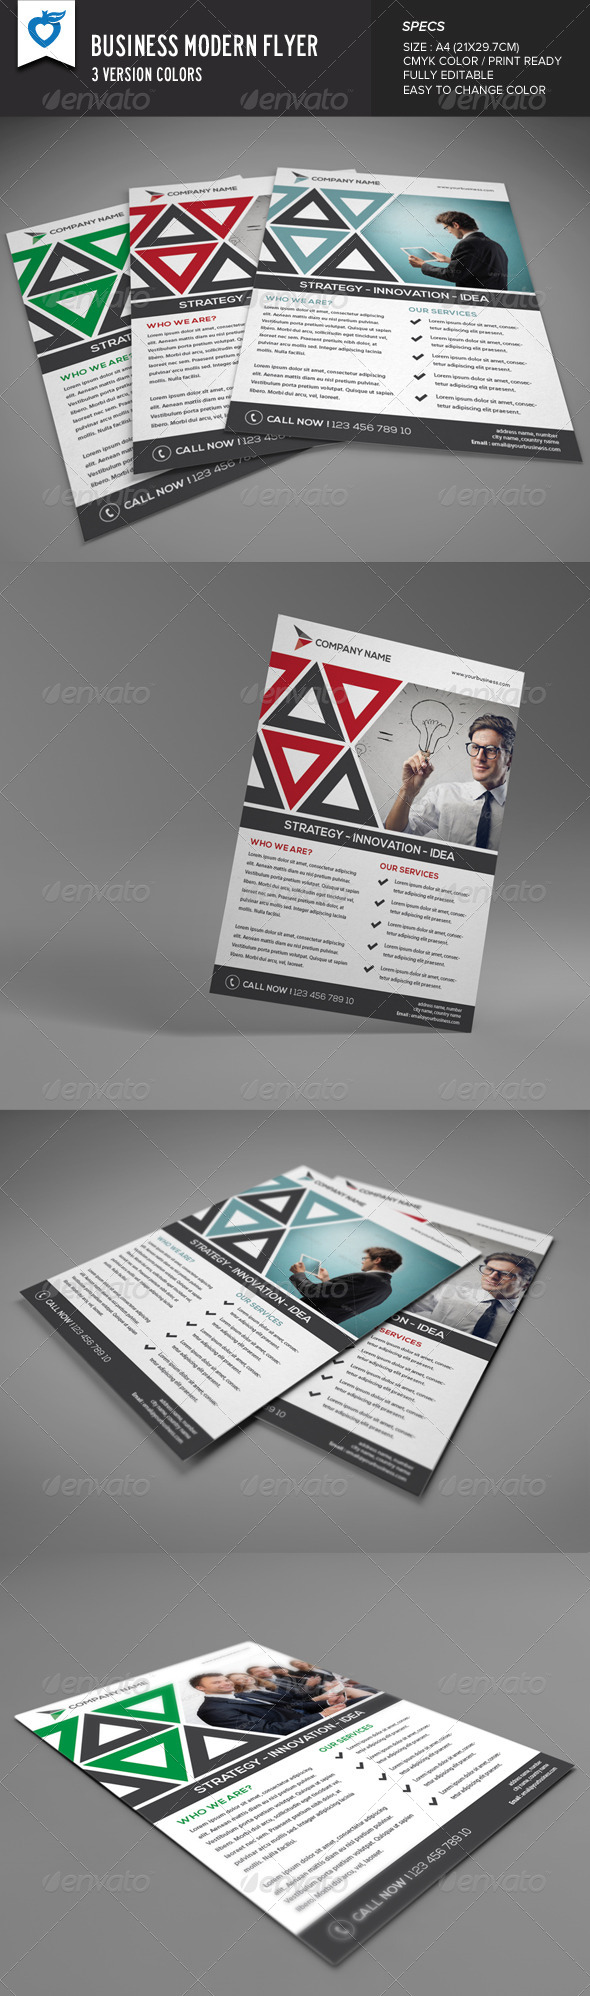 GraphicRiver Business Modern Flyer 8292619